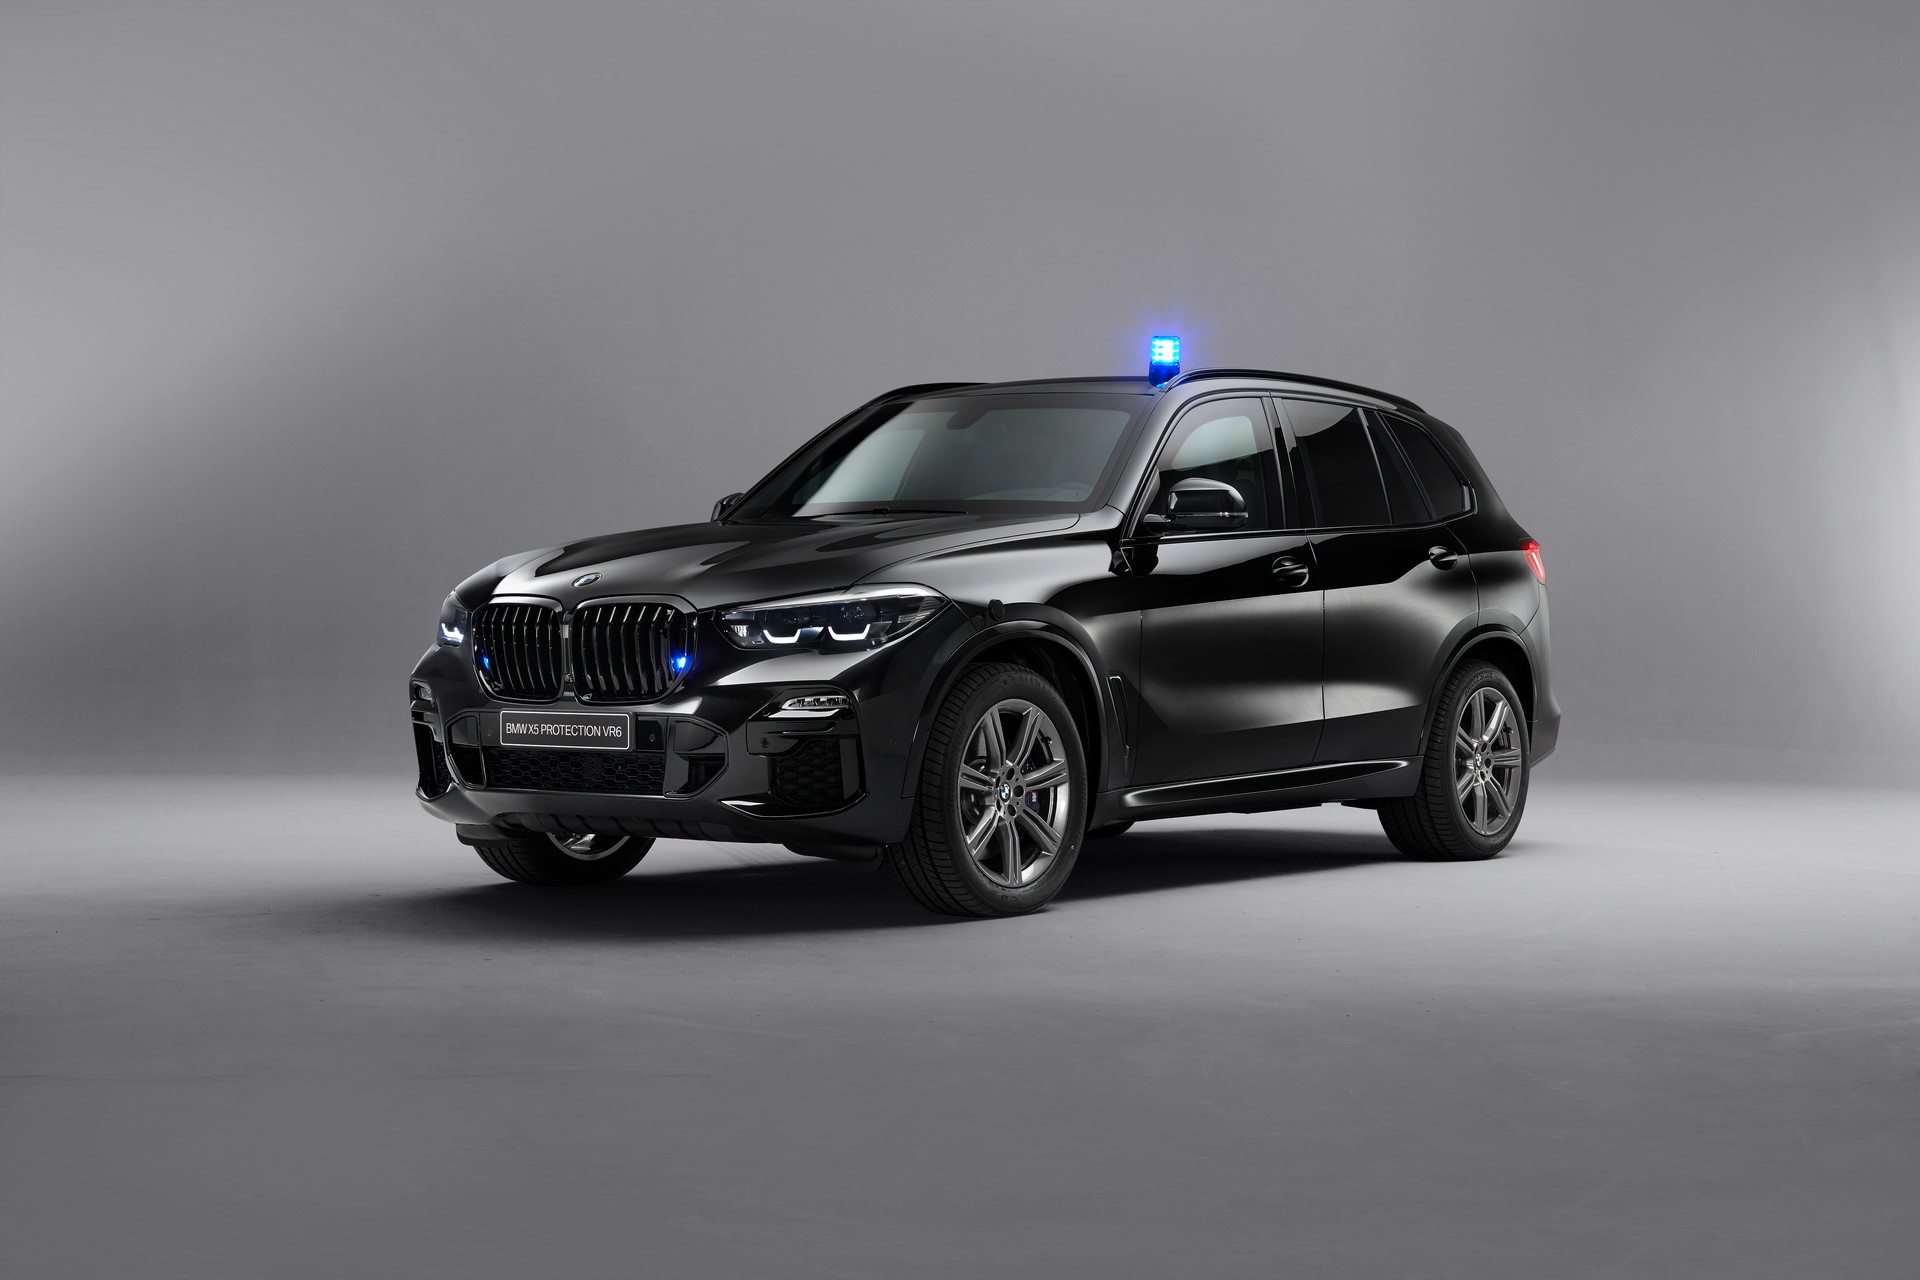 BMW-X5-Protection-VR6-3